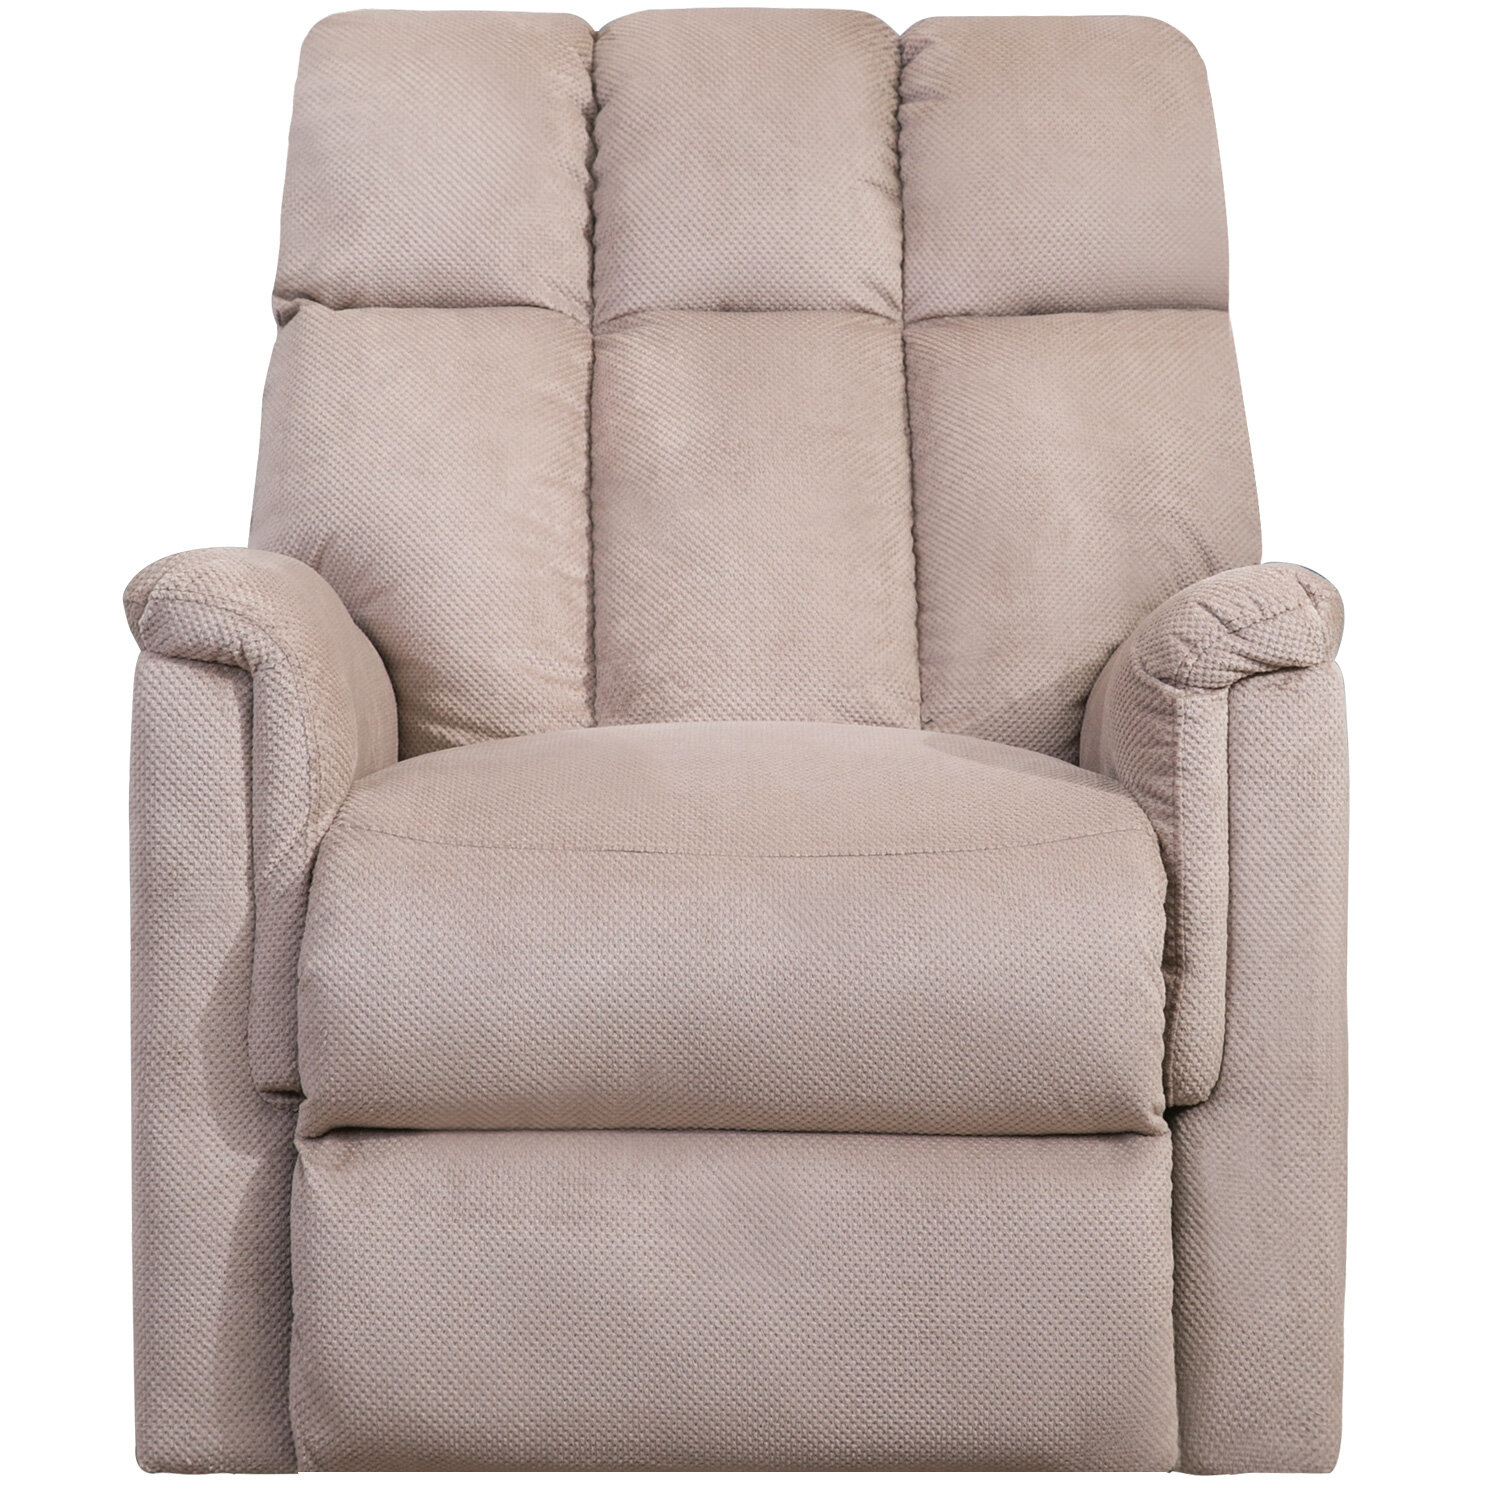 Latitude Run Castner Faux Leather Power Lift Assist Recliner Wayfair